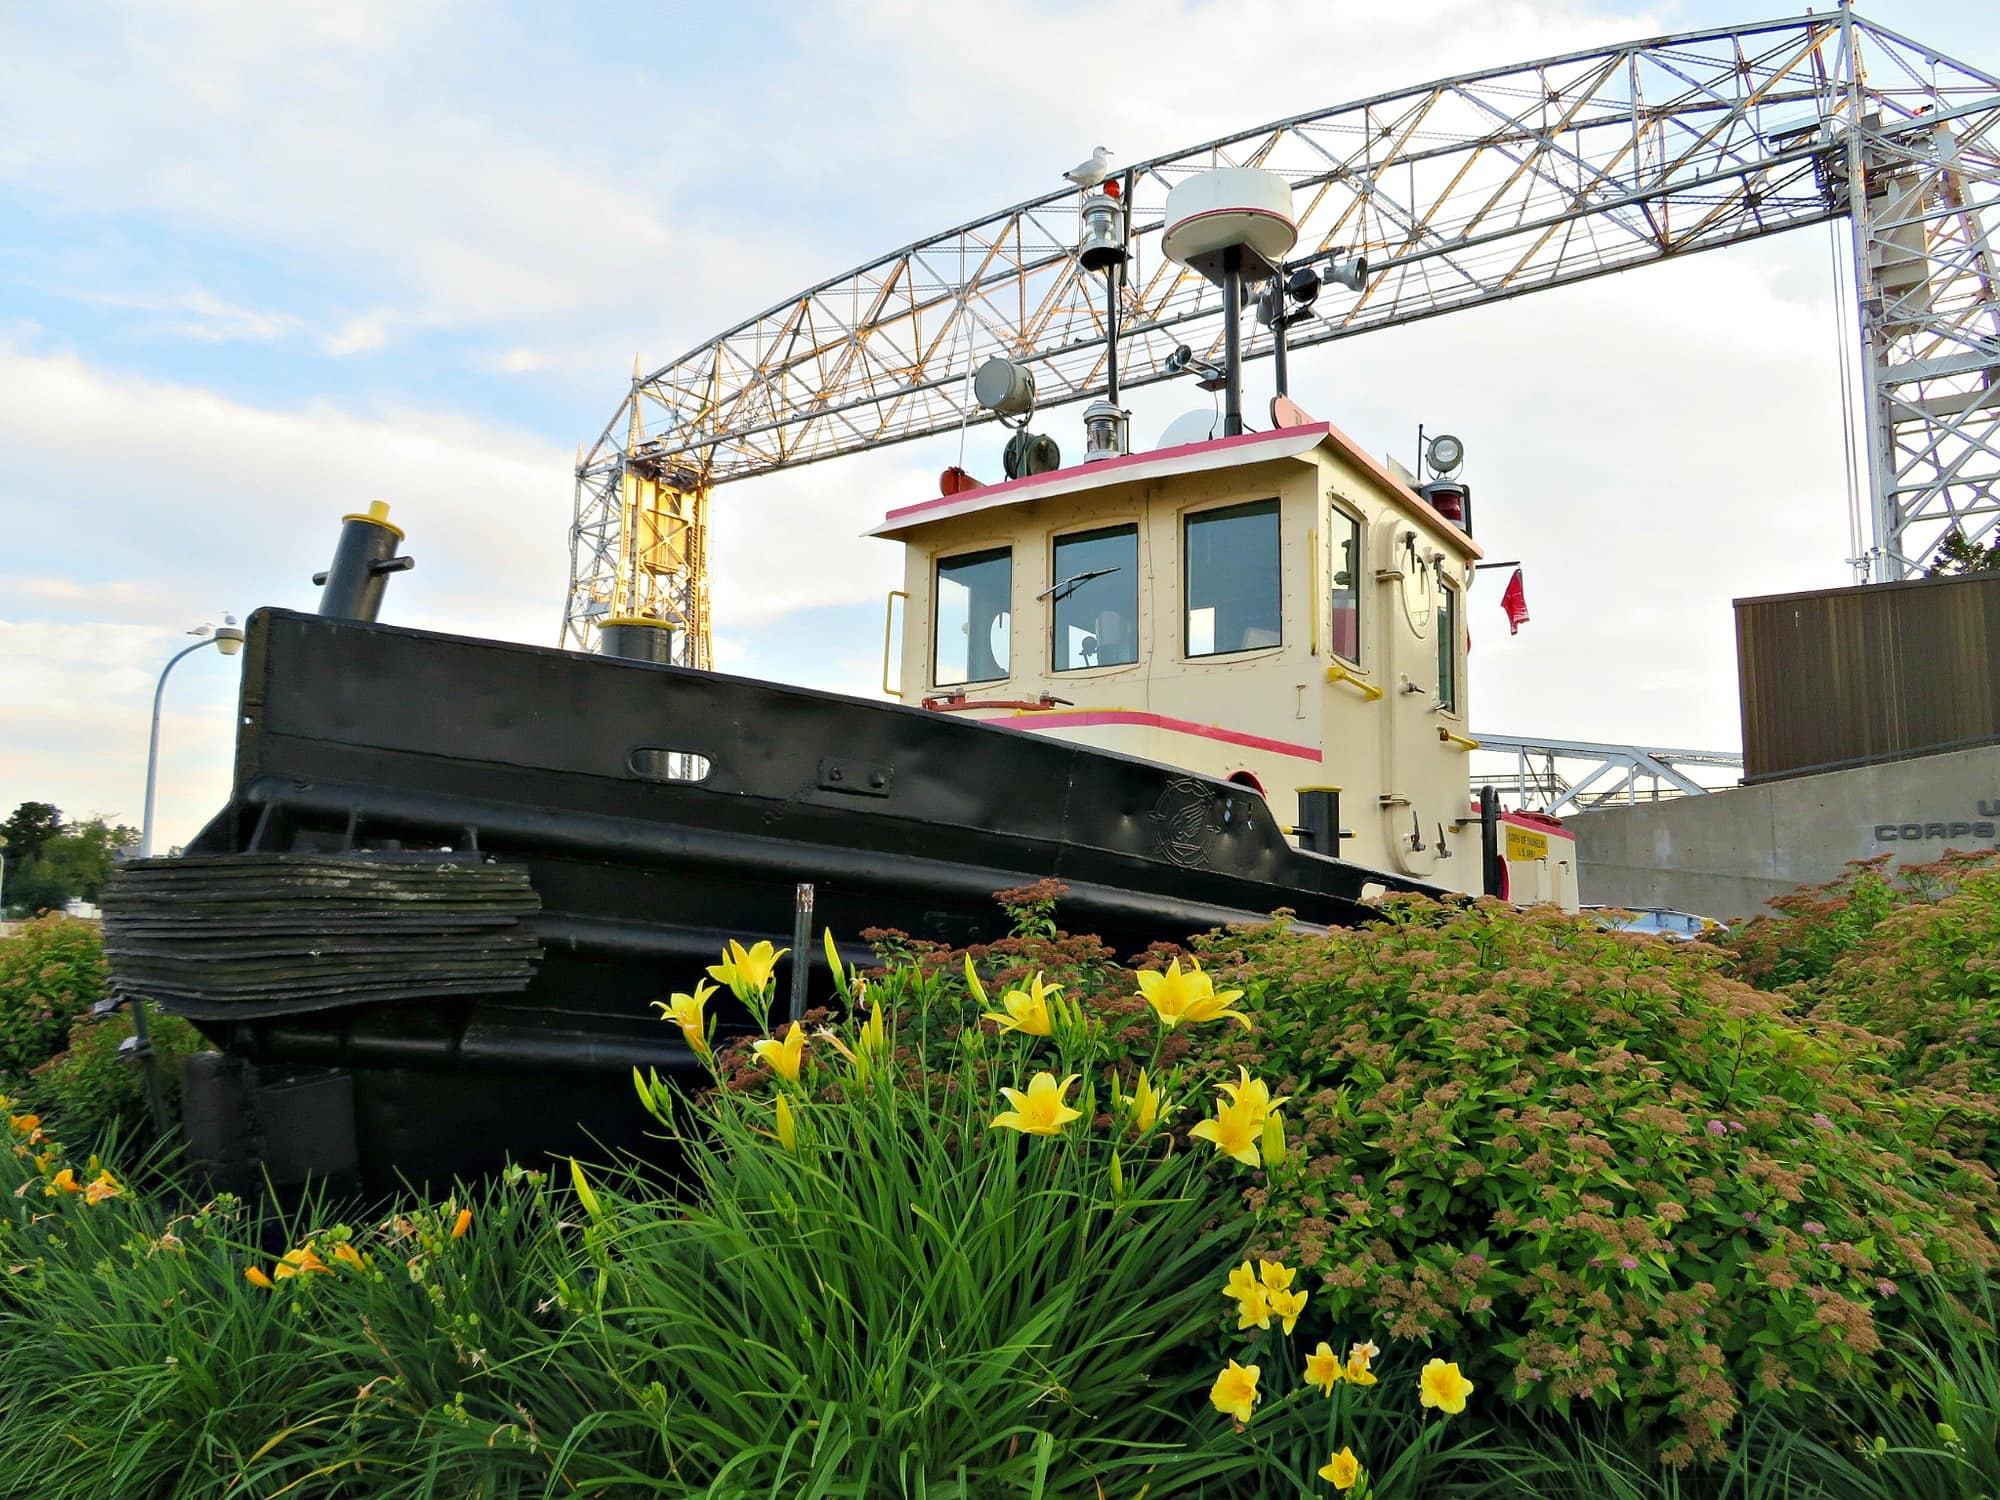 A boat on display in Canal Park with the Aerial Bridge in the distance